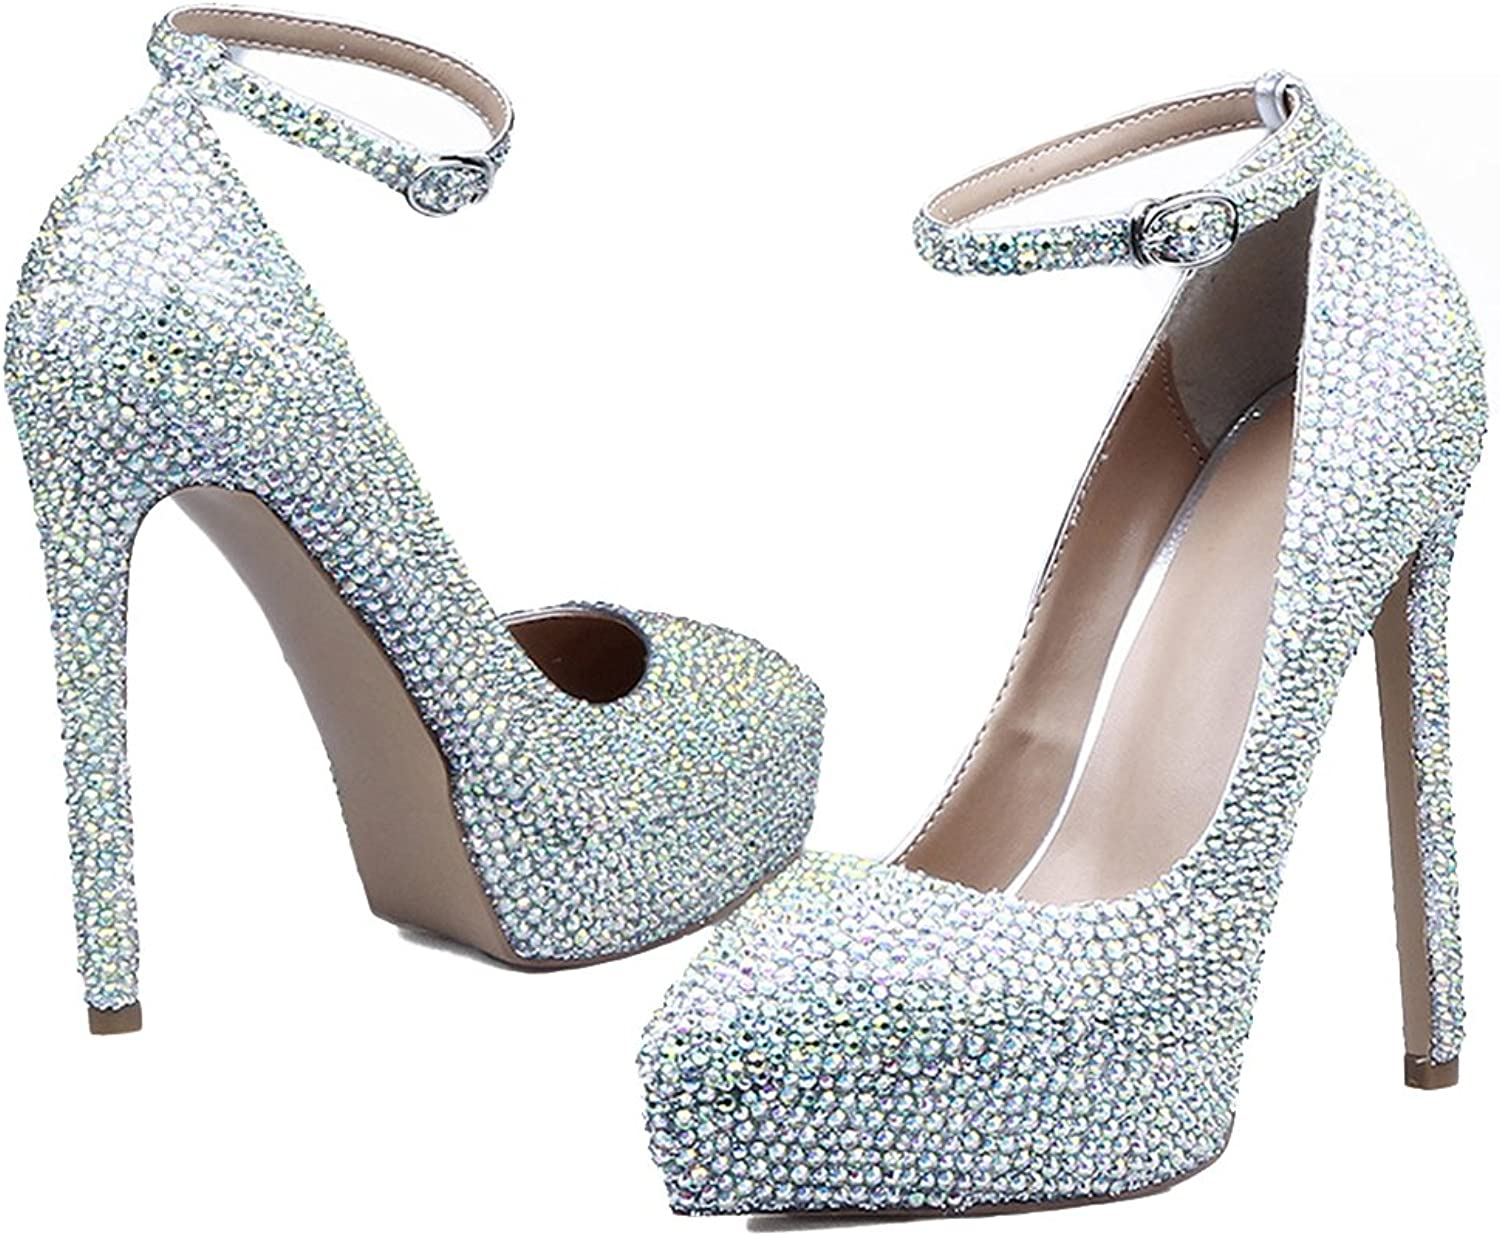 Lacitena Rhinestone Heels, Silver Crystal High Heels,Luxury Sparkly Ankle Strap Pointed Toe shoes